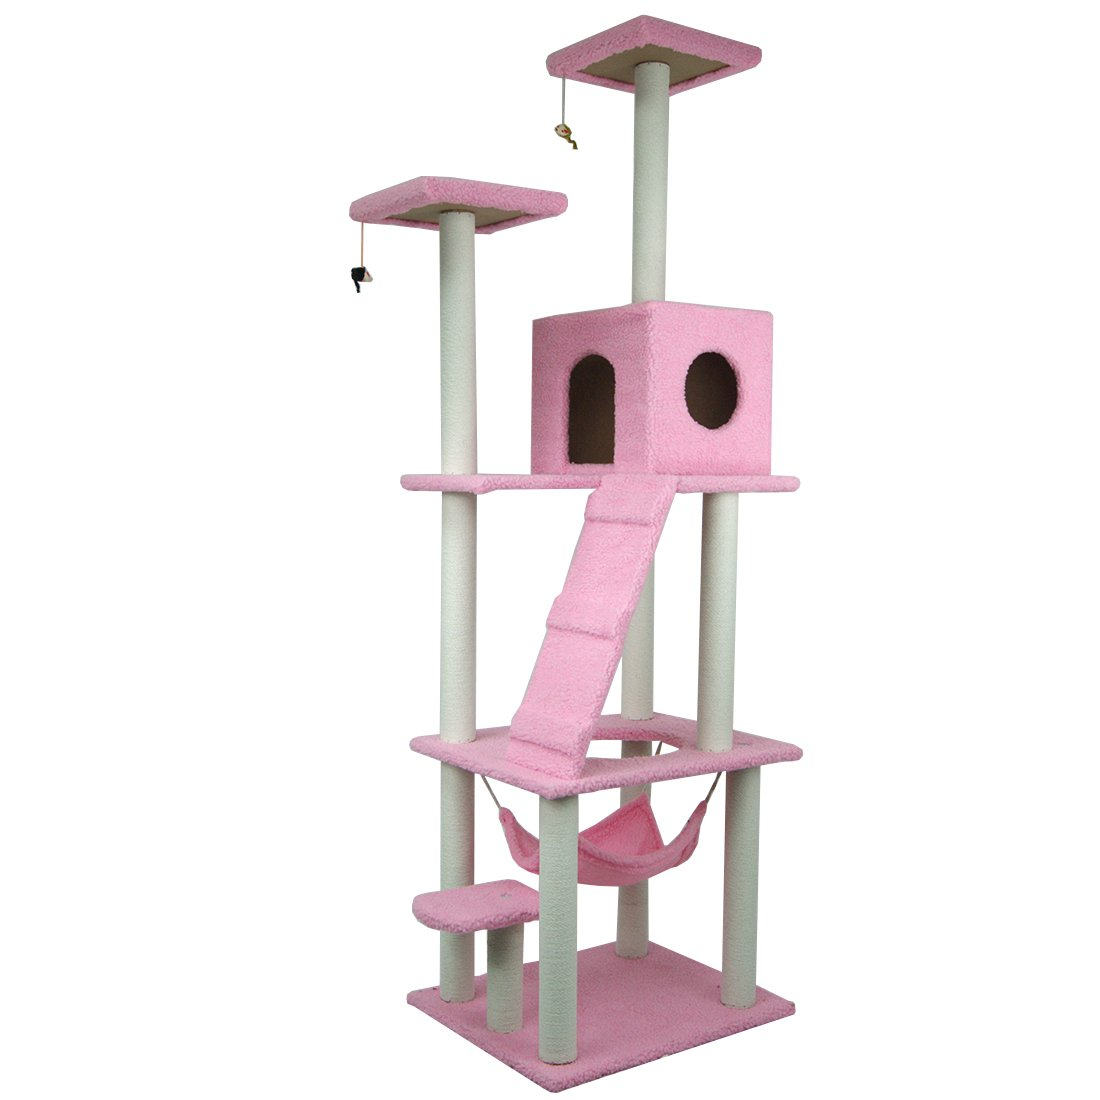 Harmony Life 73 Inch Cat Tree Tower Condo Scratcher Post Furniture Pet House With Hammock Bed (Pink)